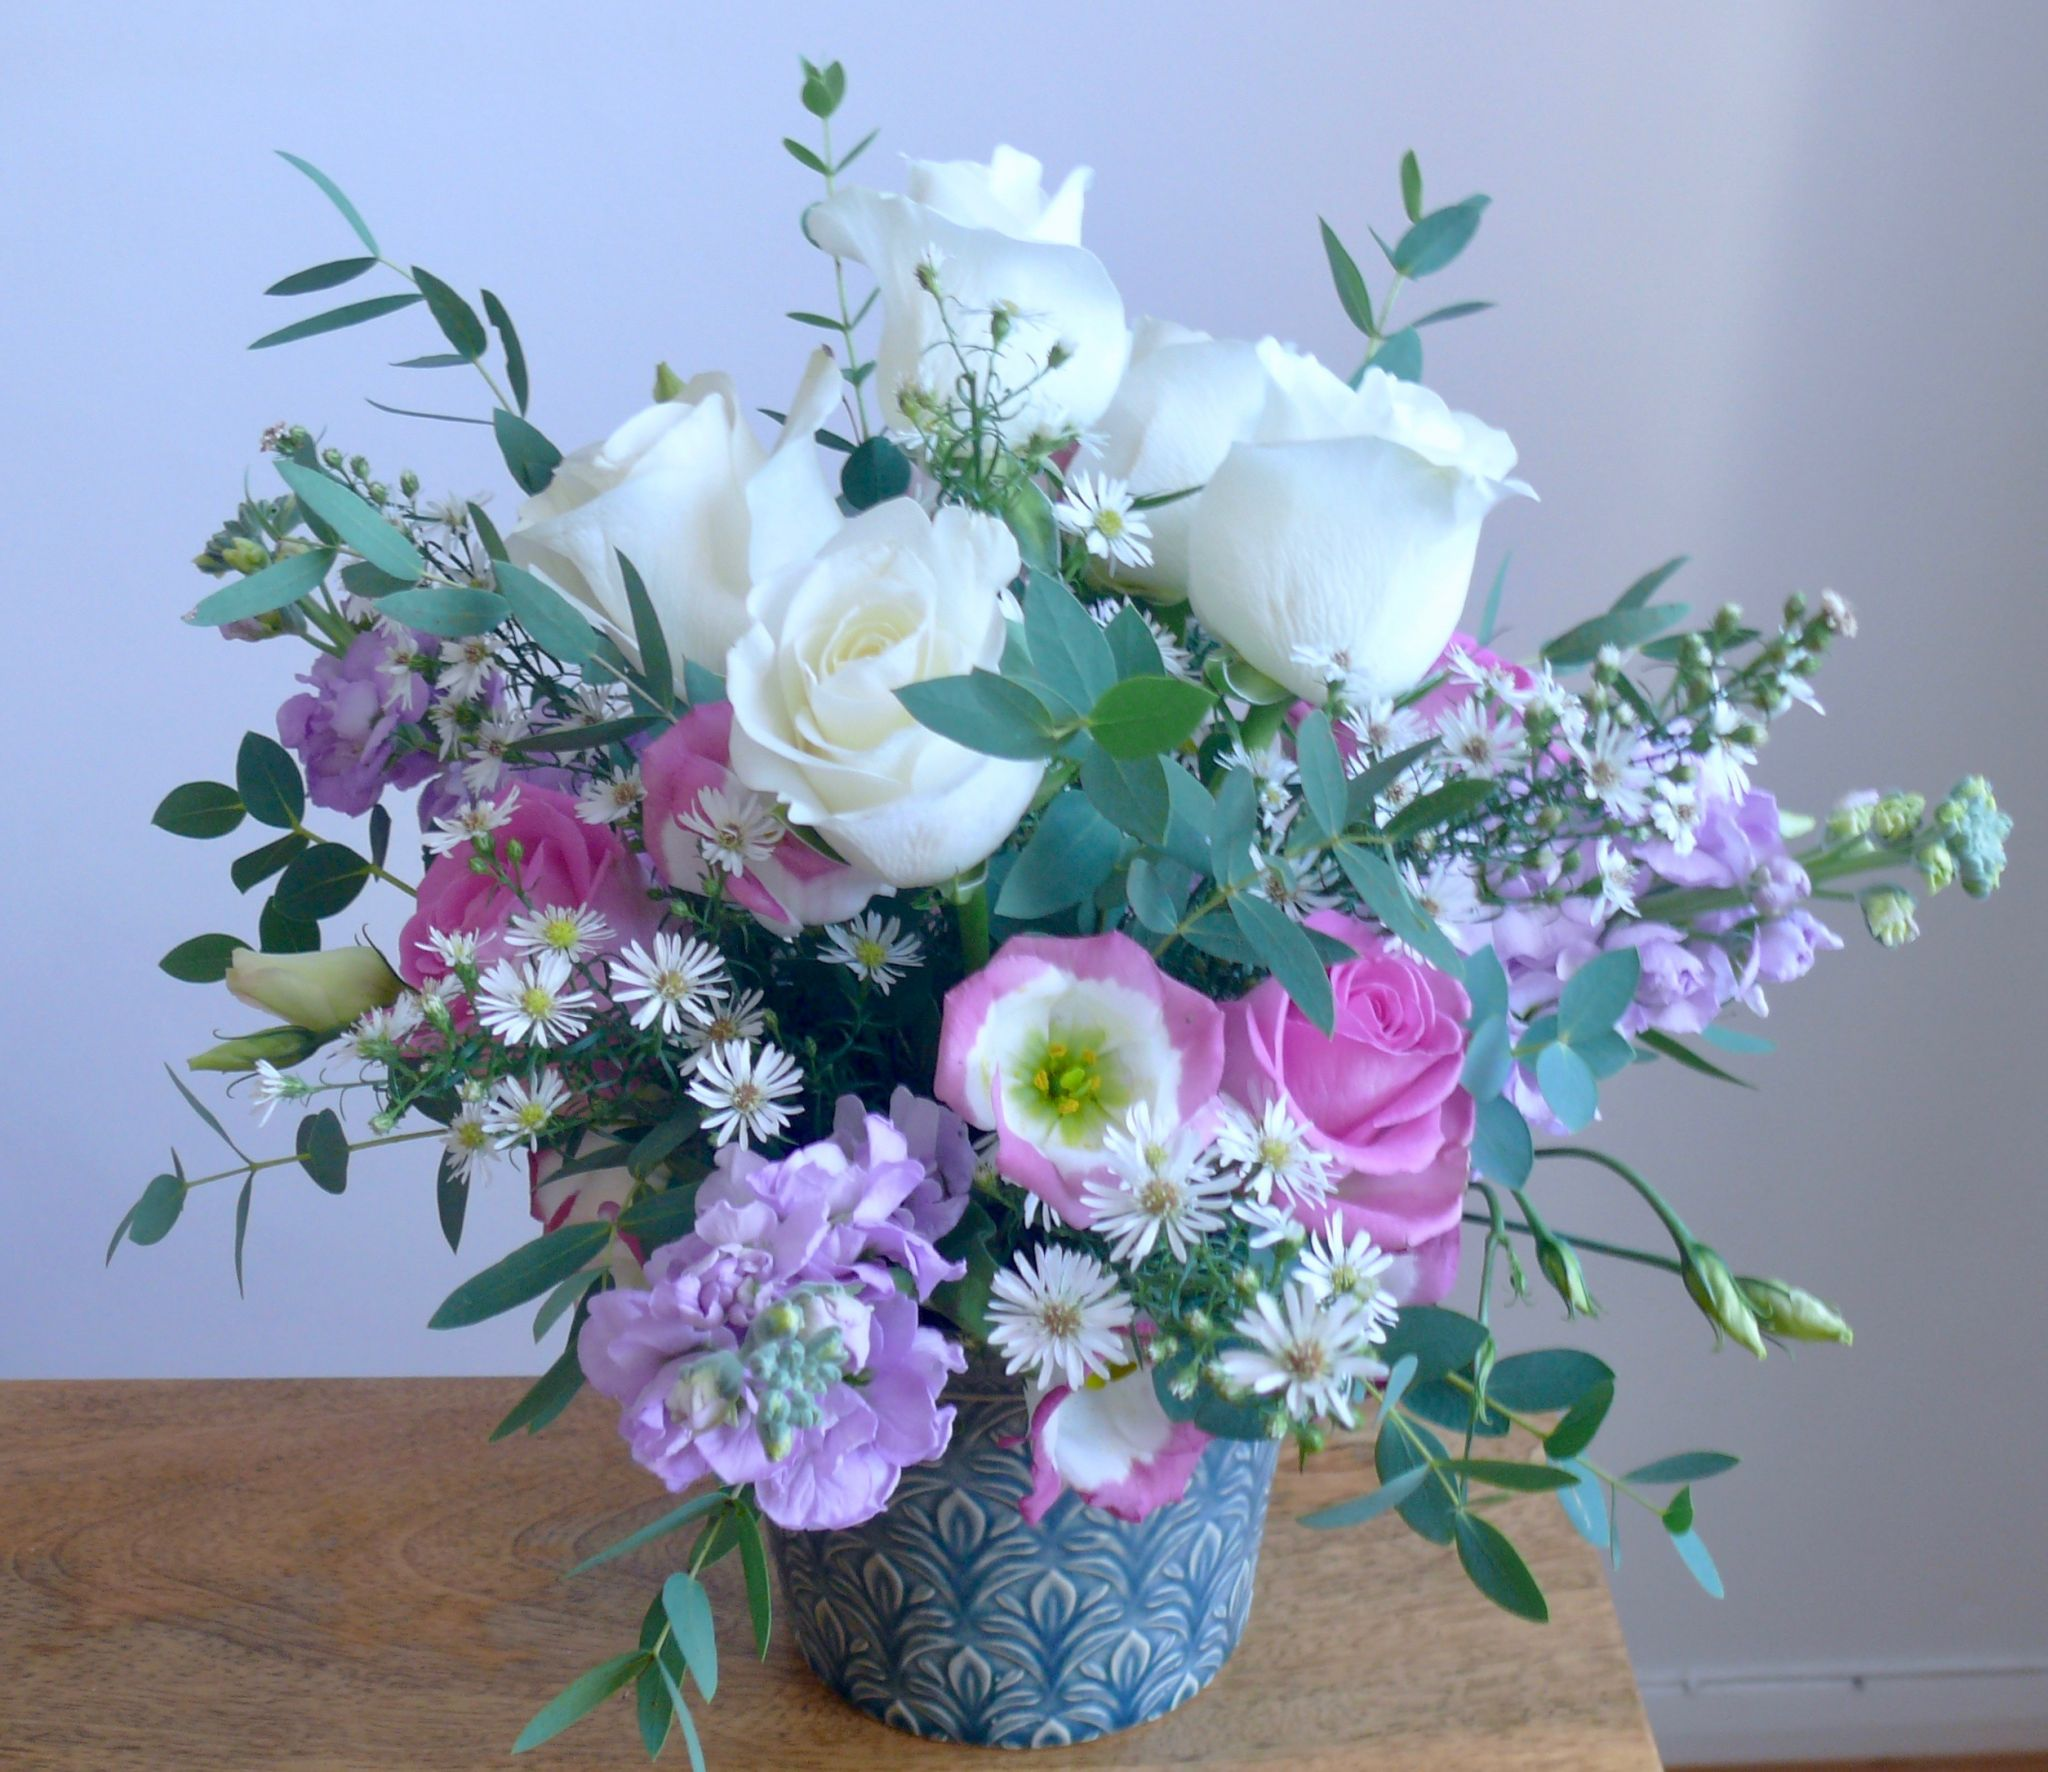 Featured supplier – So Blooming Beautiful